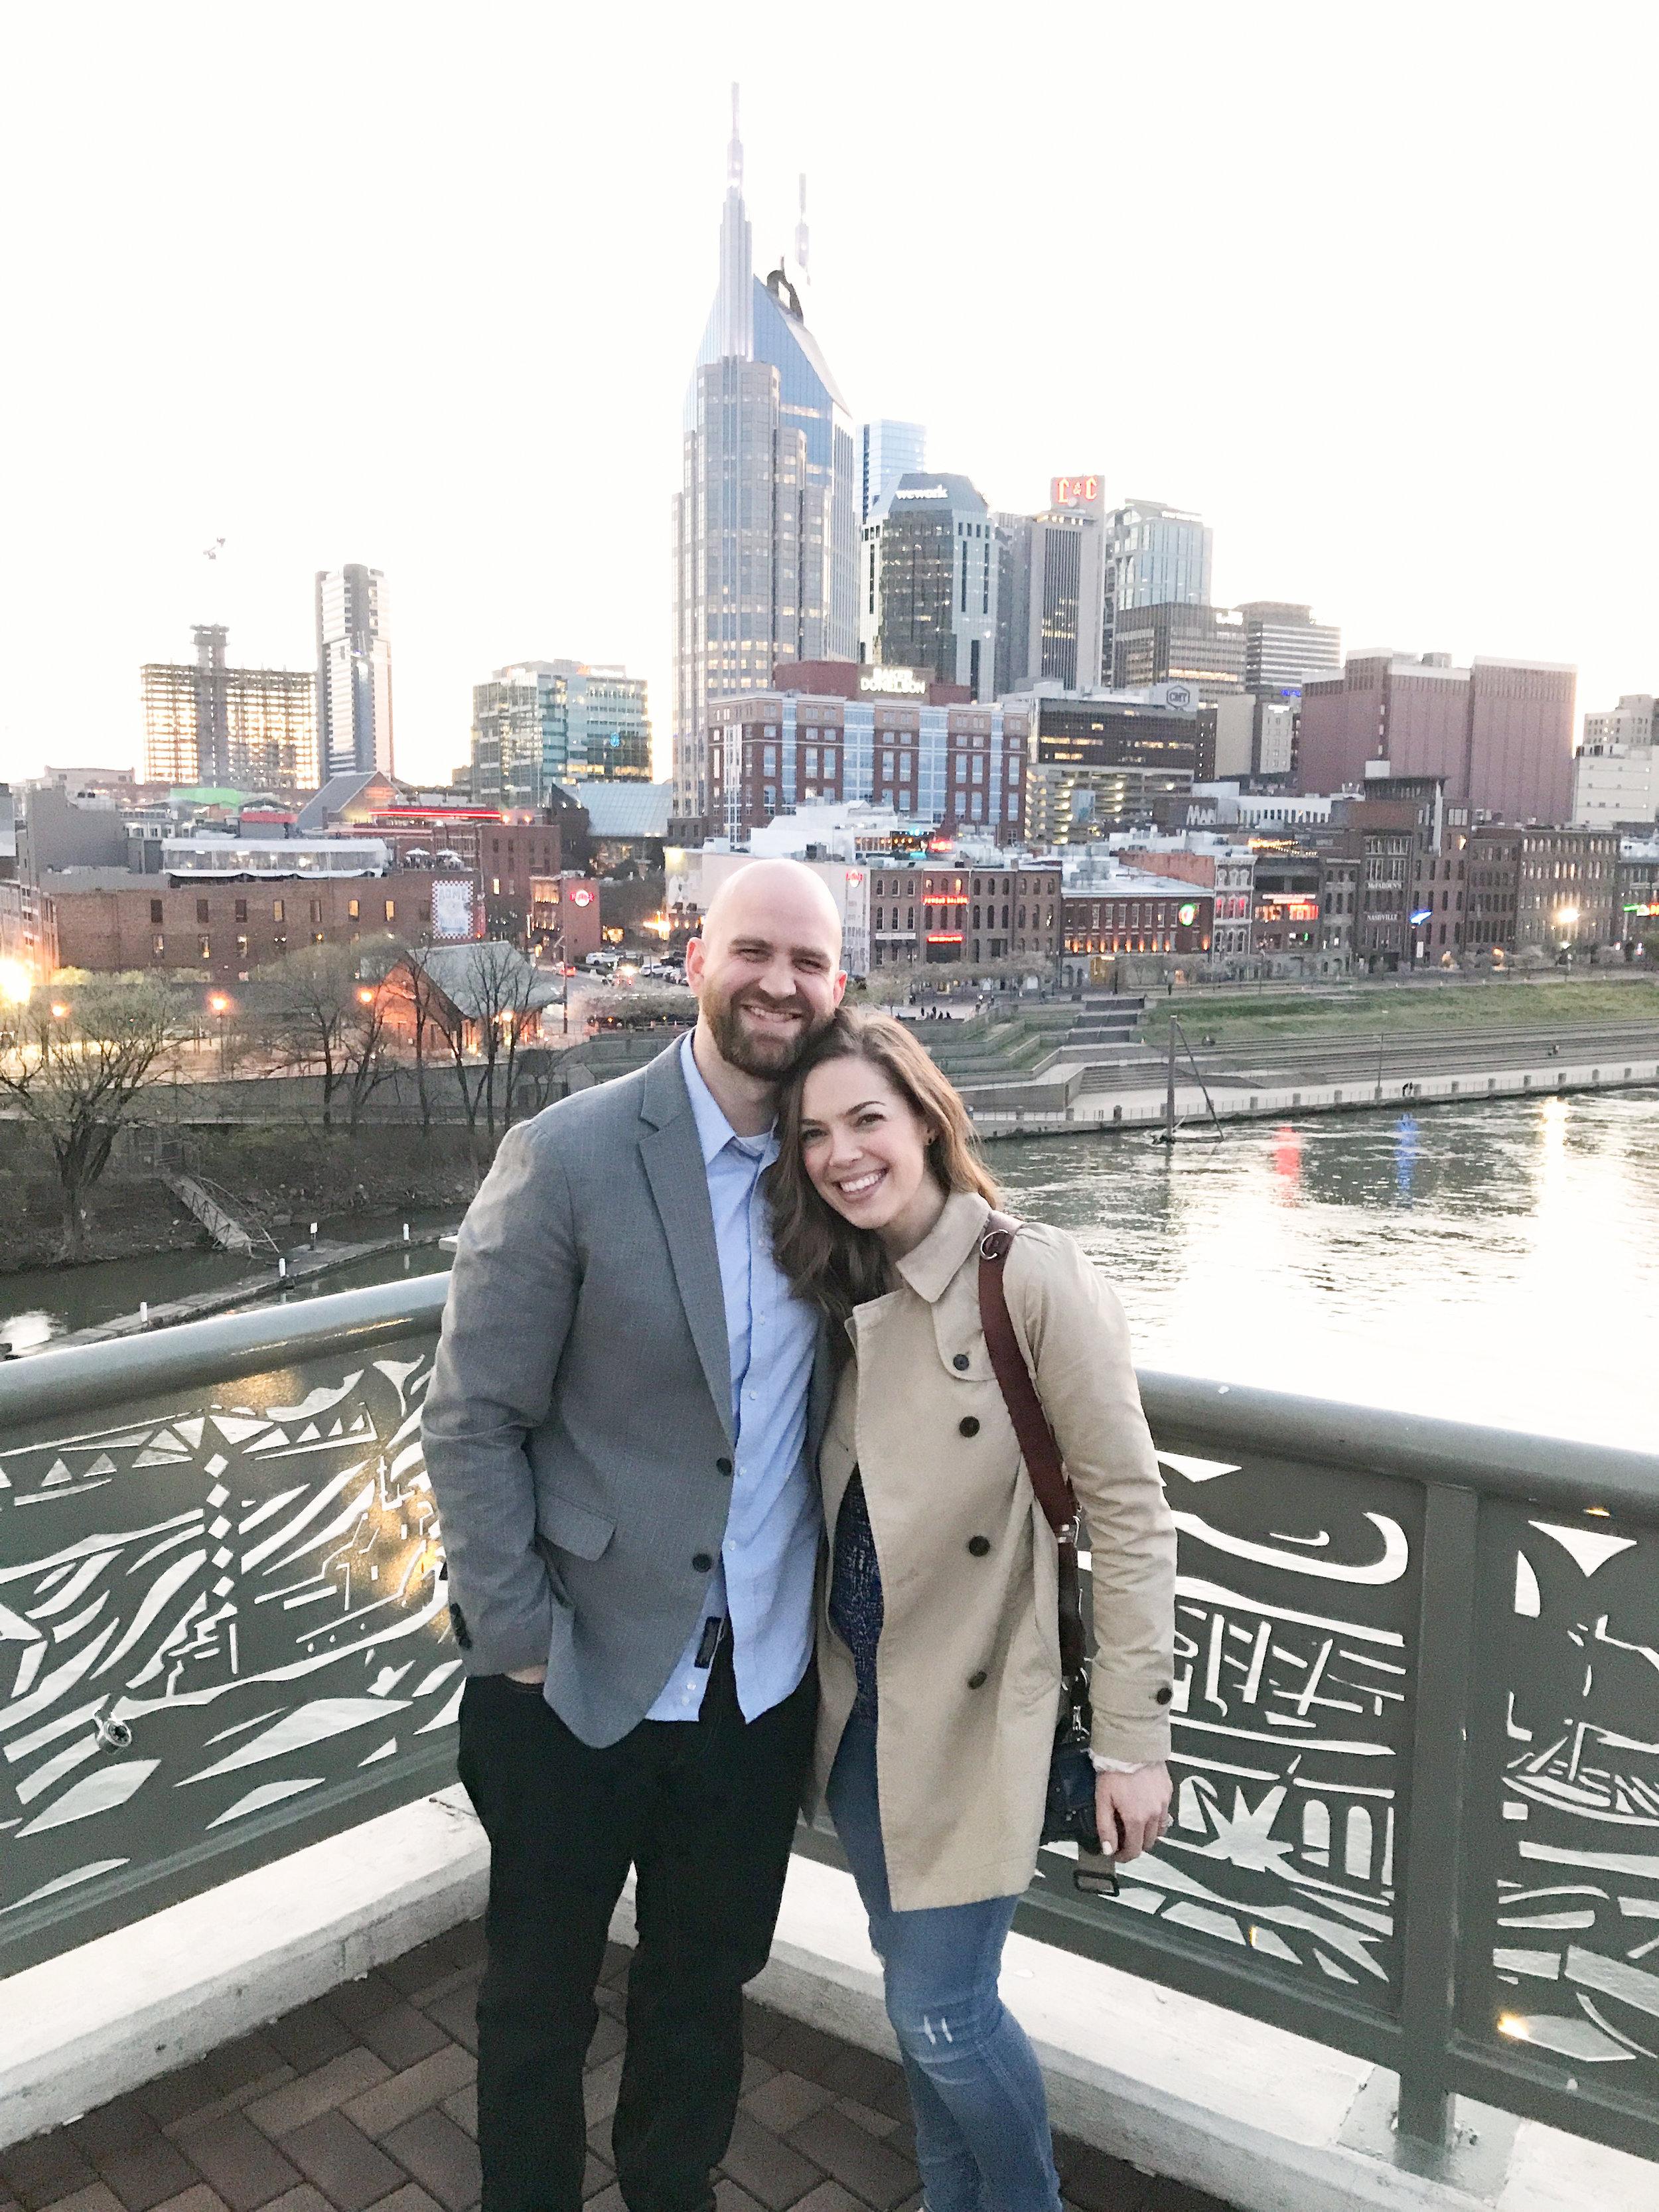 In Nashville for a photo shoot- we loved how walkable the city is and had fun zipping around on electric scooters.